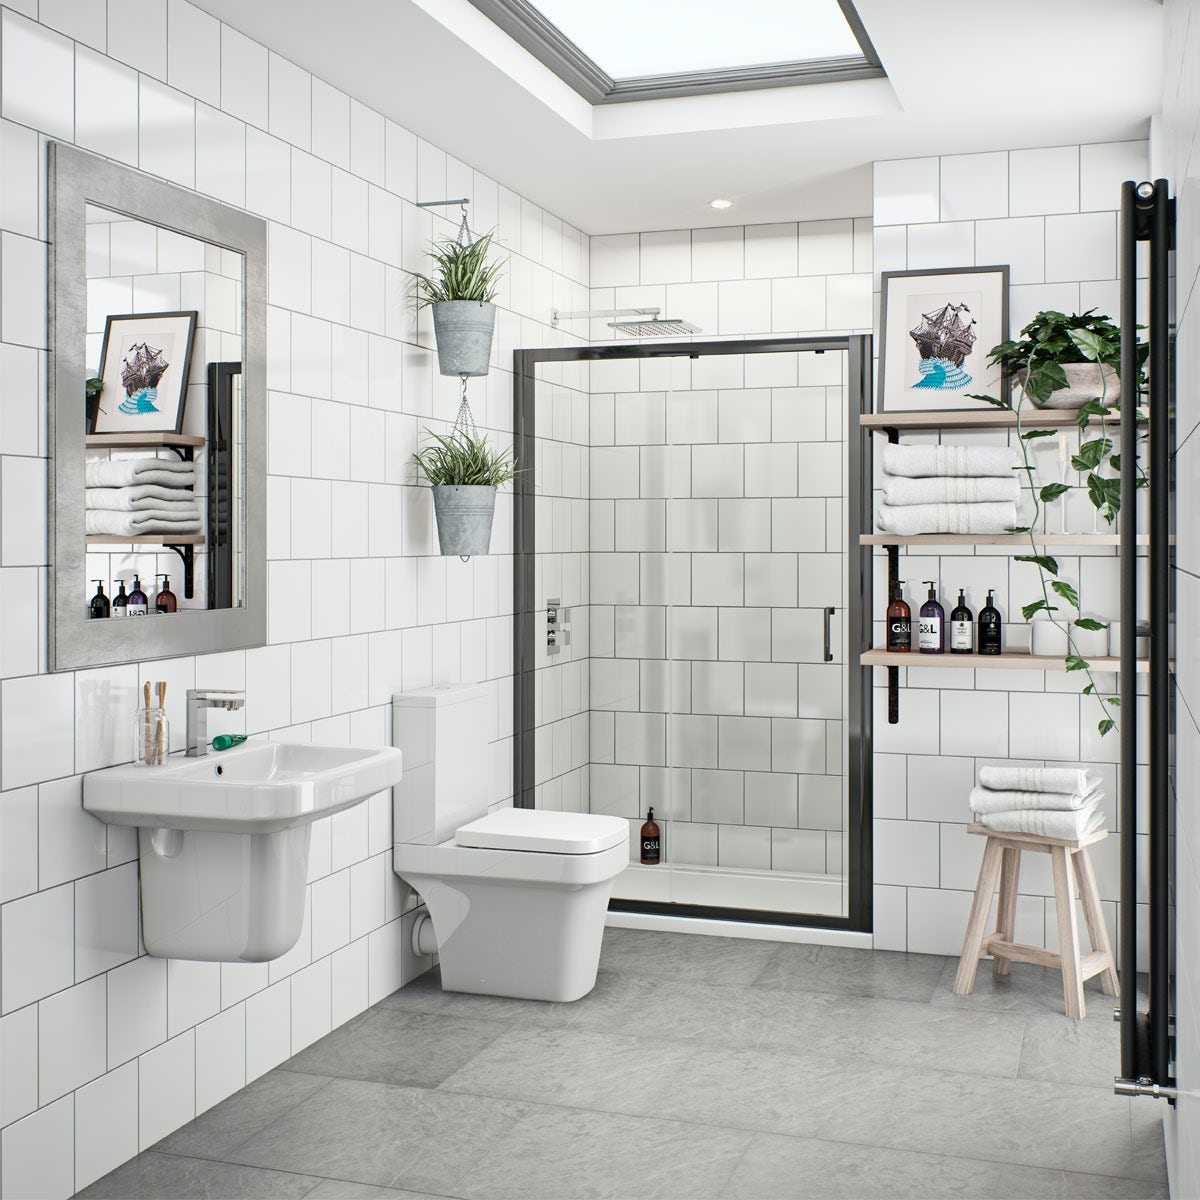 Mode Carter ensuite suite with 6mm shower door, tap and shower set